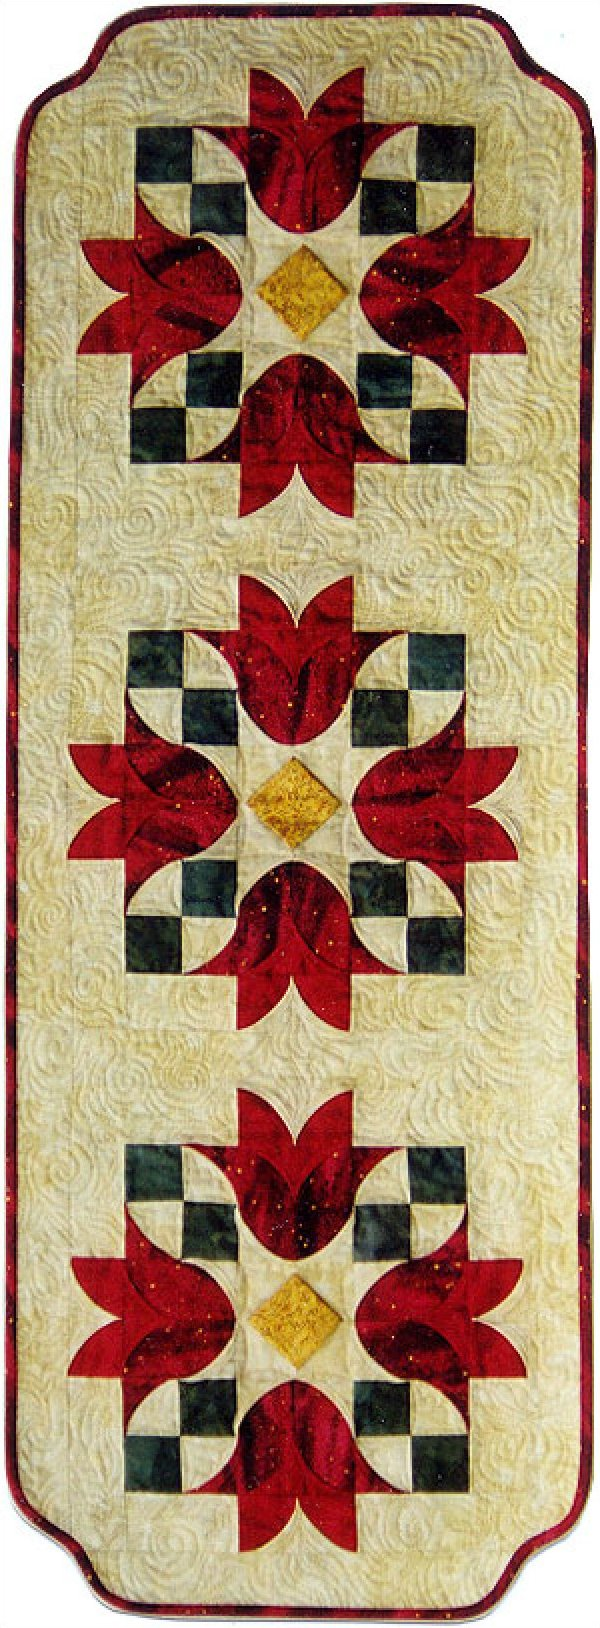 Tulip Bells Table Runner Pattern - Southwind Designs - SWD-404